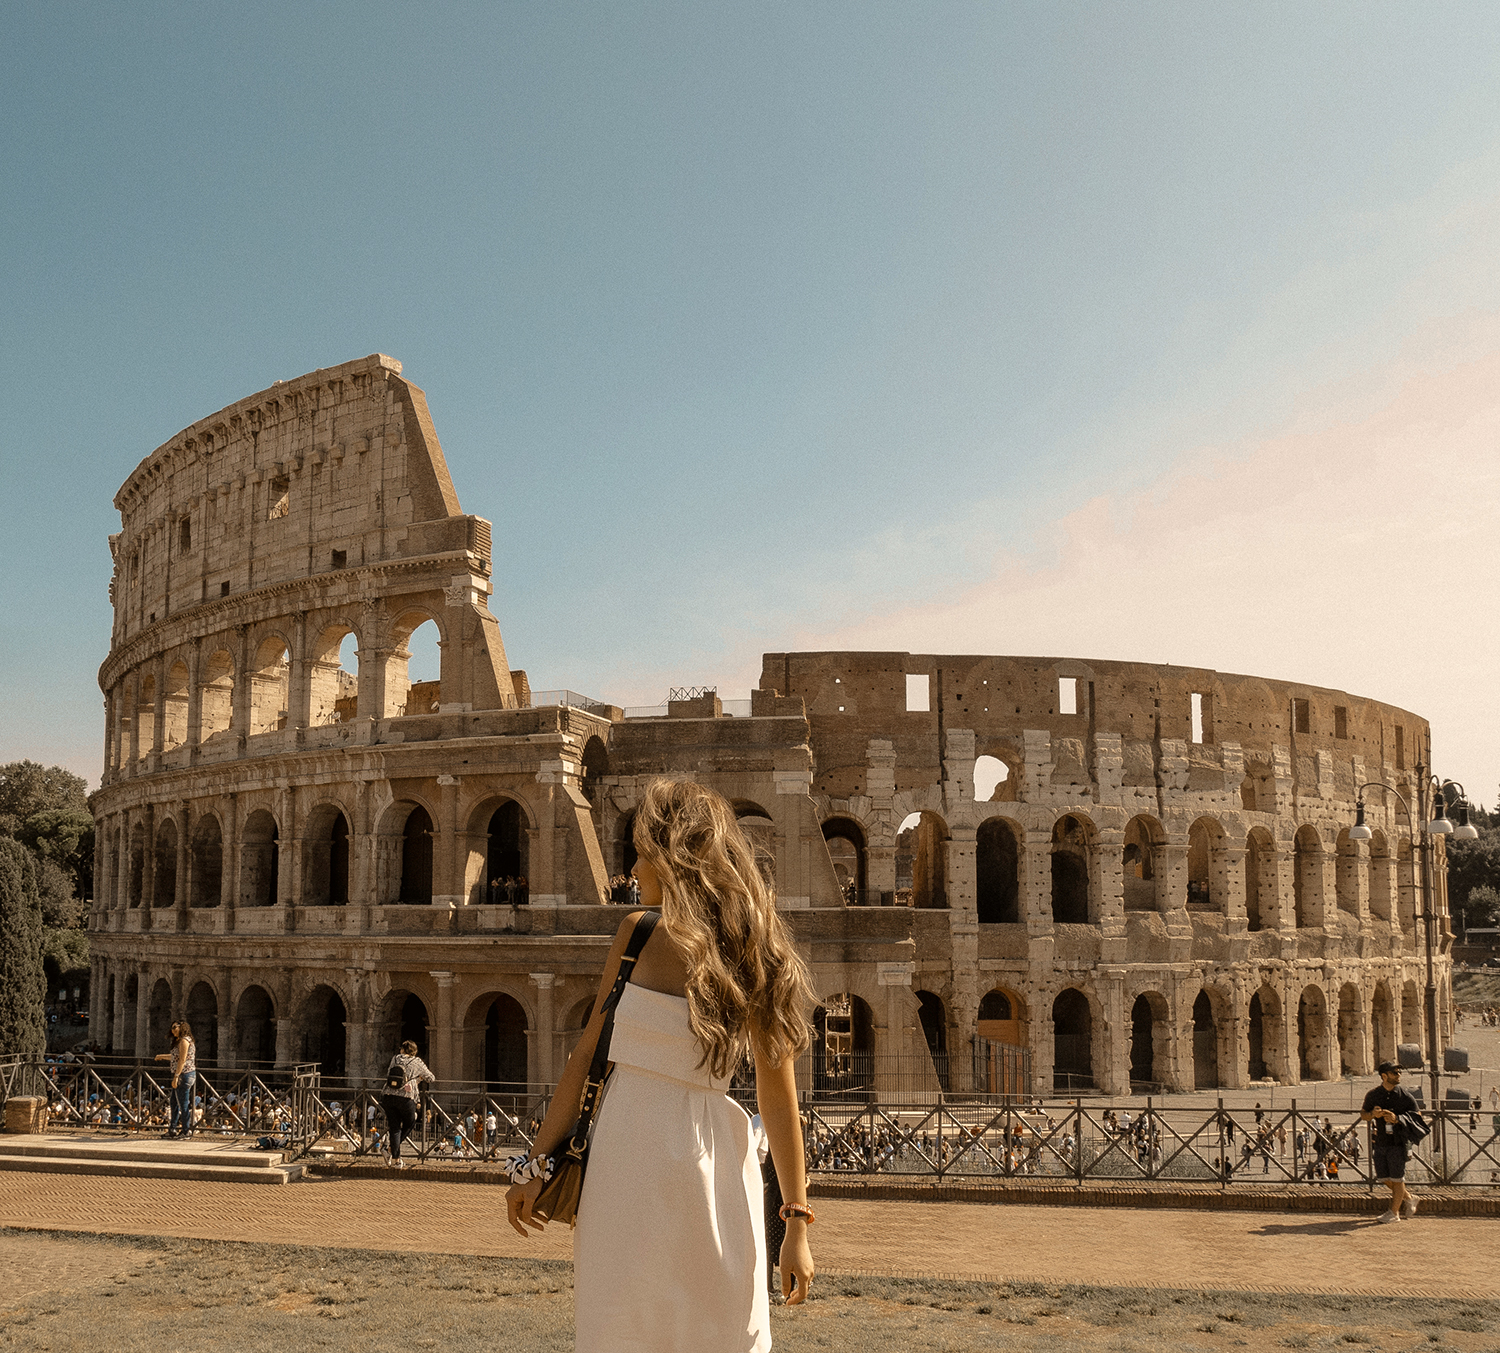 In front of Colosseum in Rome